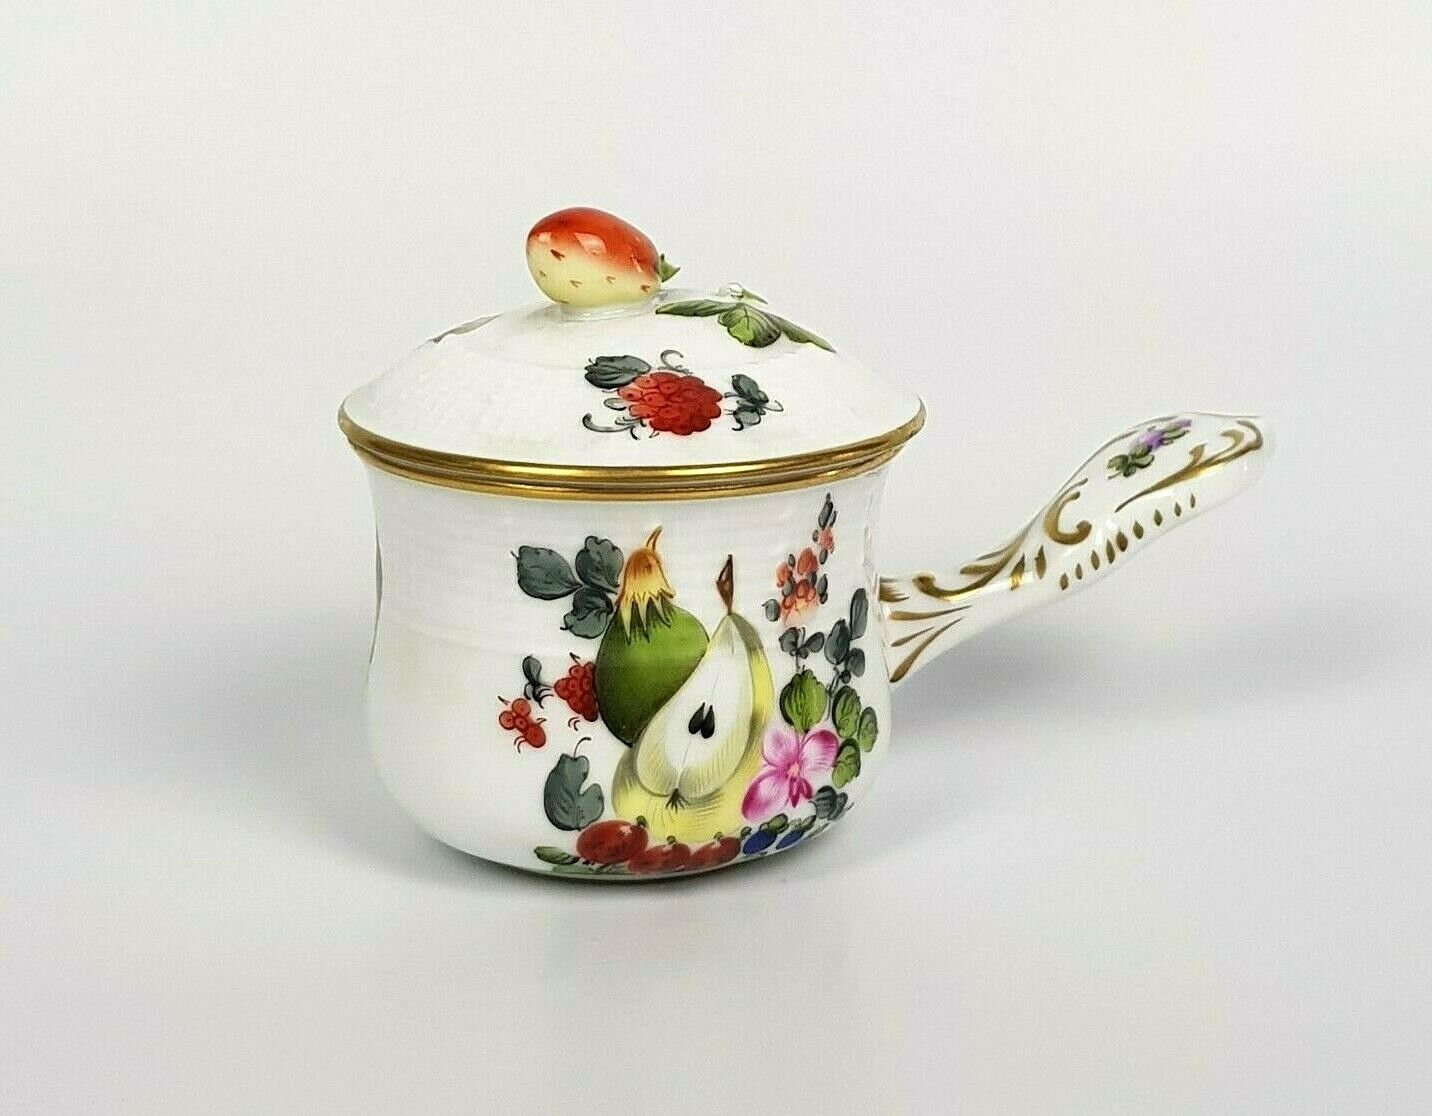 Herend Hungary TAZZA ZUPPA CACAO CIOCCOLATIERA HAND PAINTED FRUTTA PORCELLANA